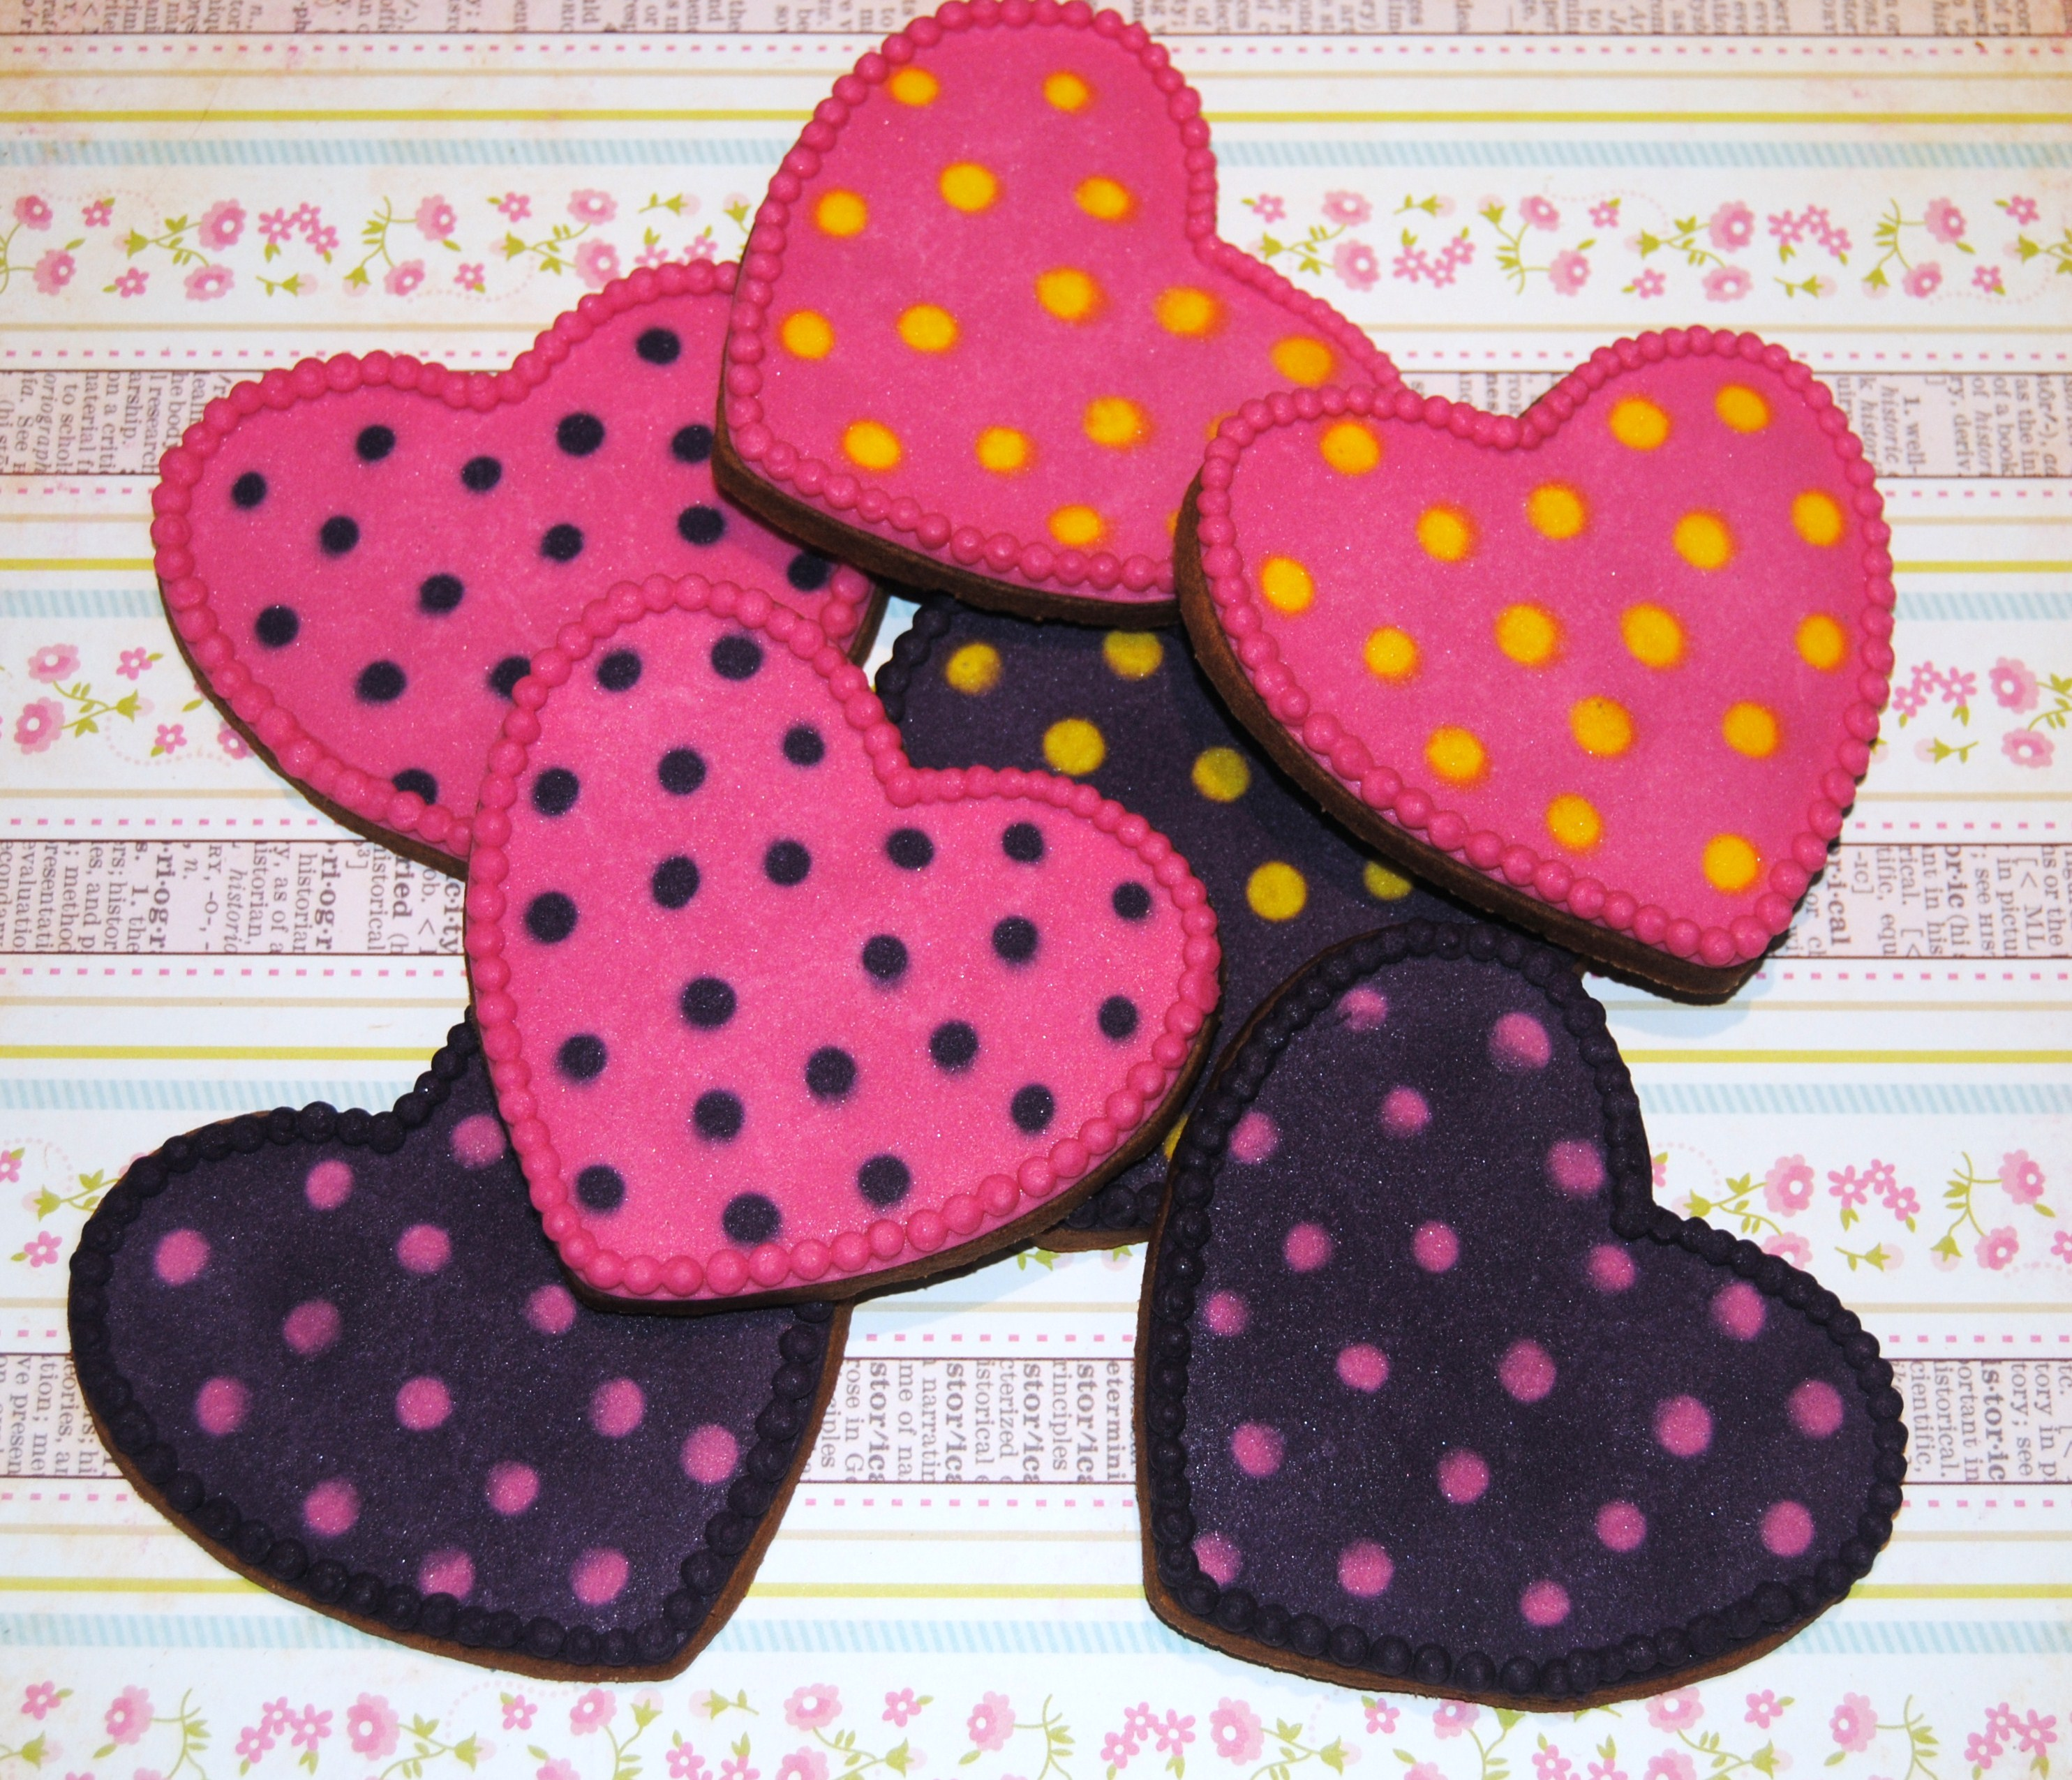 Galletas De Corazon Decoradas Galletas De Corazones Y Estrellas Cookie Hearts And Stars